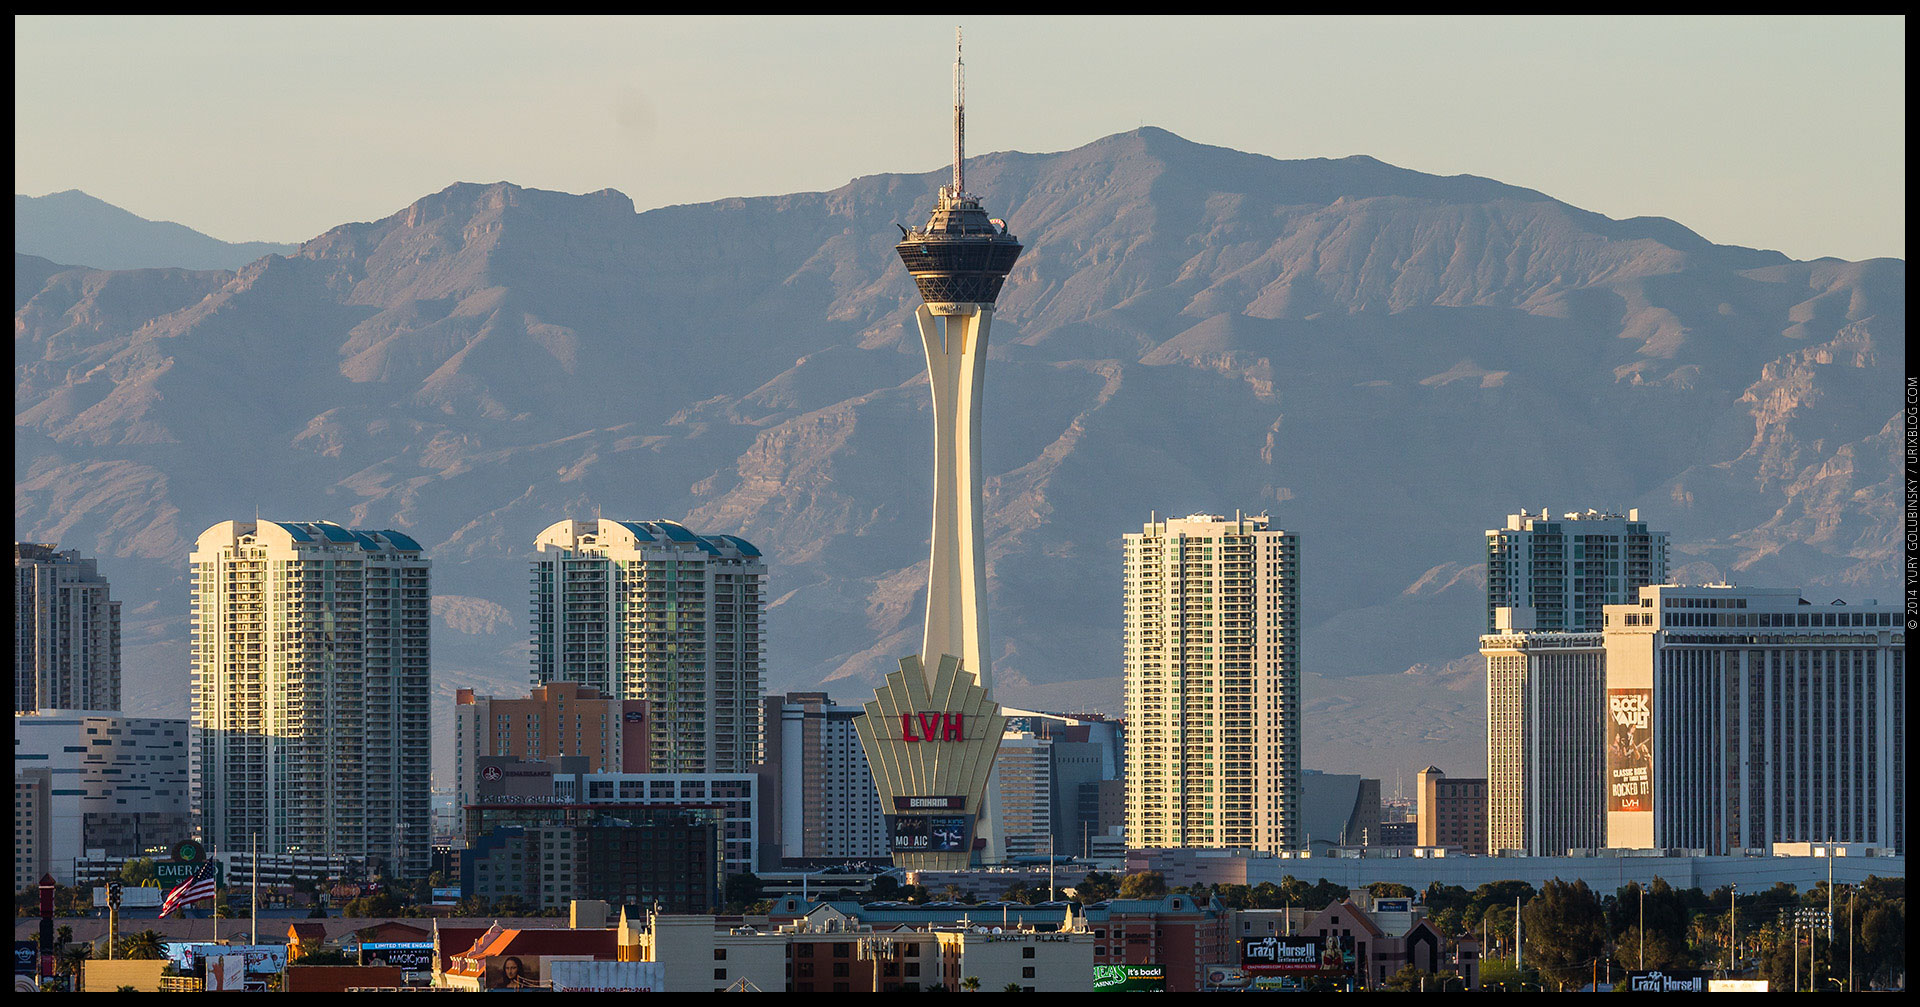 Stratosphere tower, casino, hotel, mountains, 2014, LAS, Las Vegas McCarran International airport, strip, LV, Clark County, USA, Nevada, panorama, horizon, city